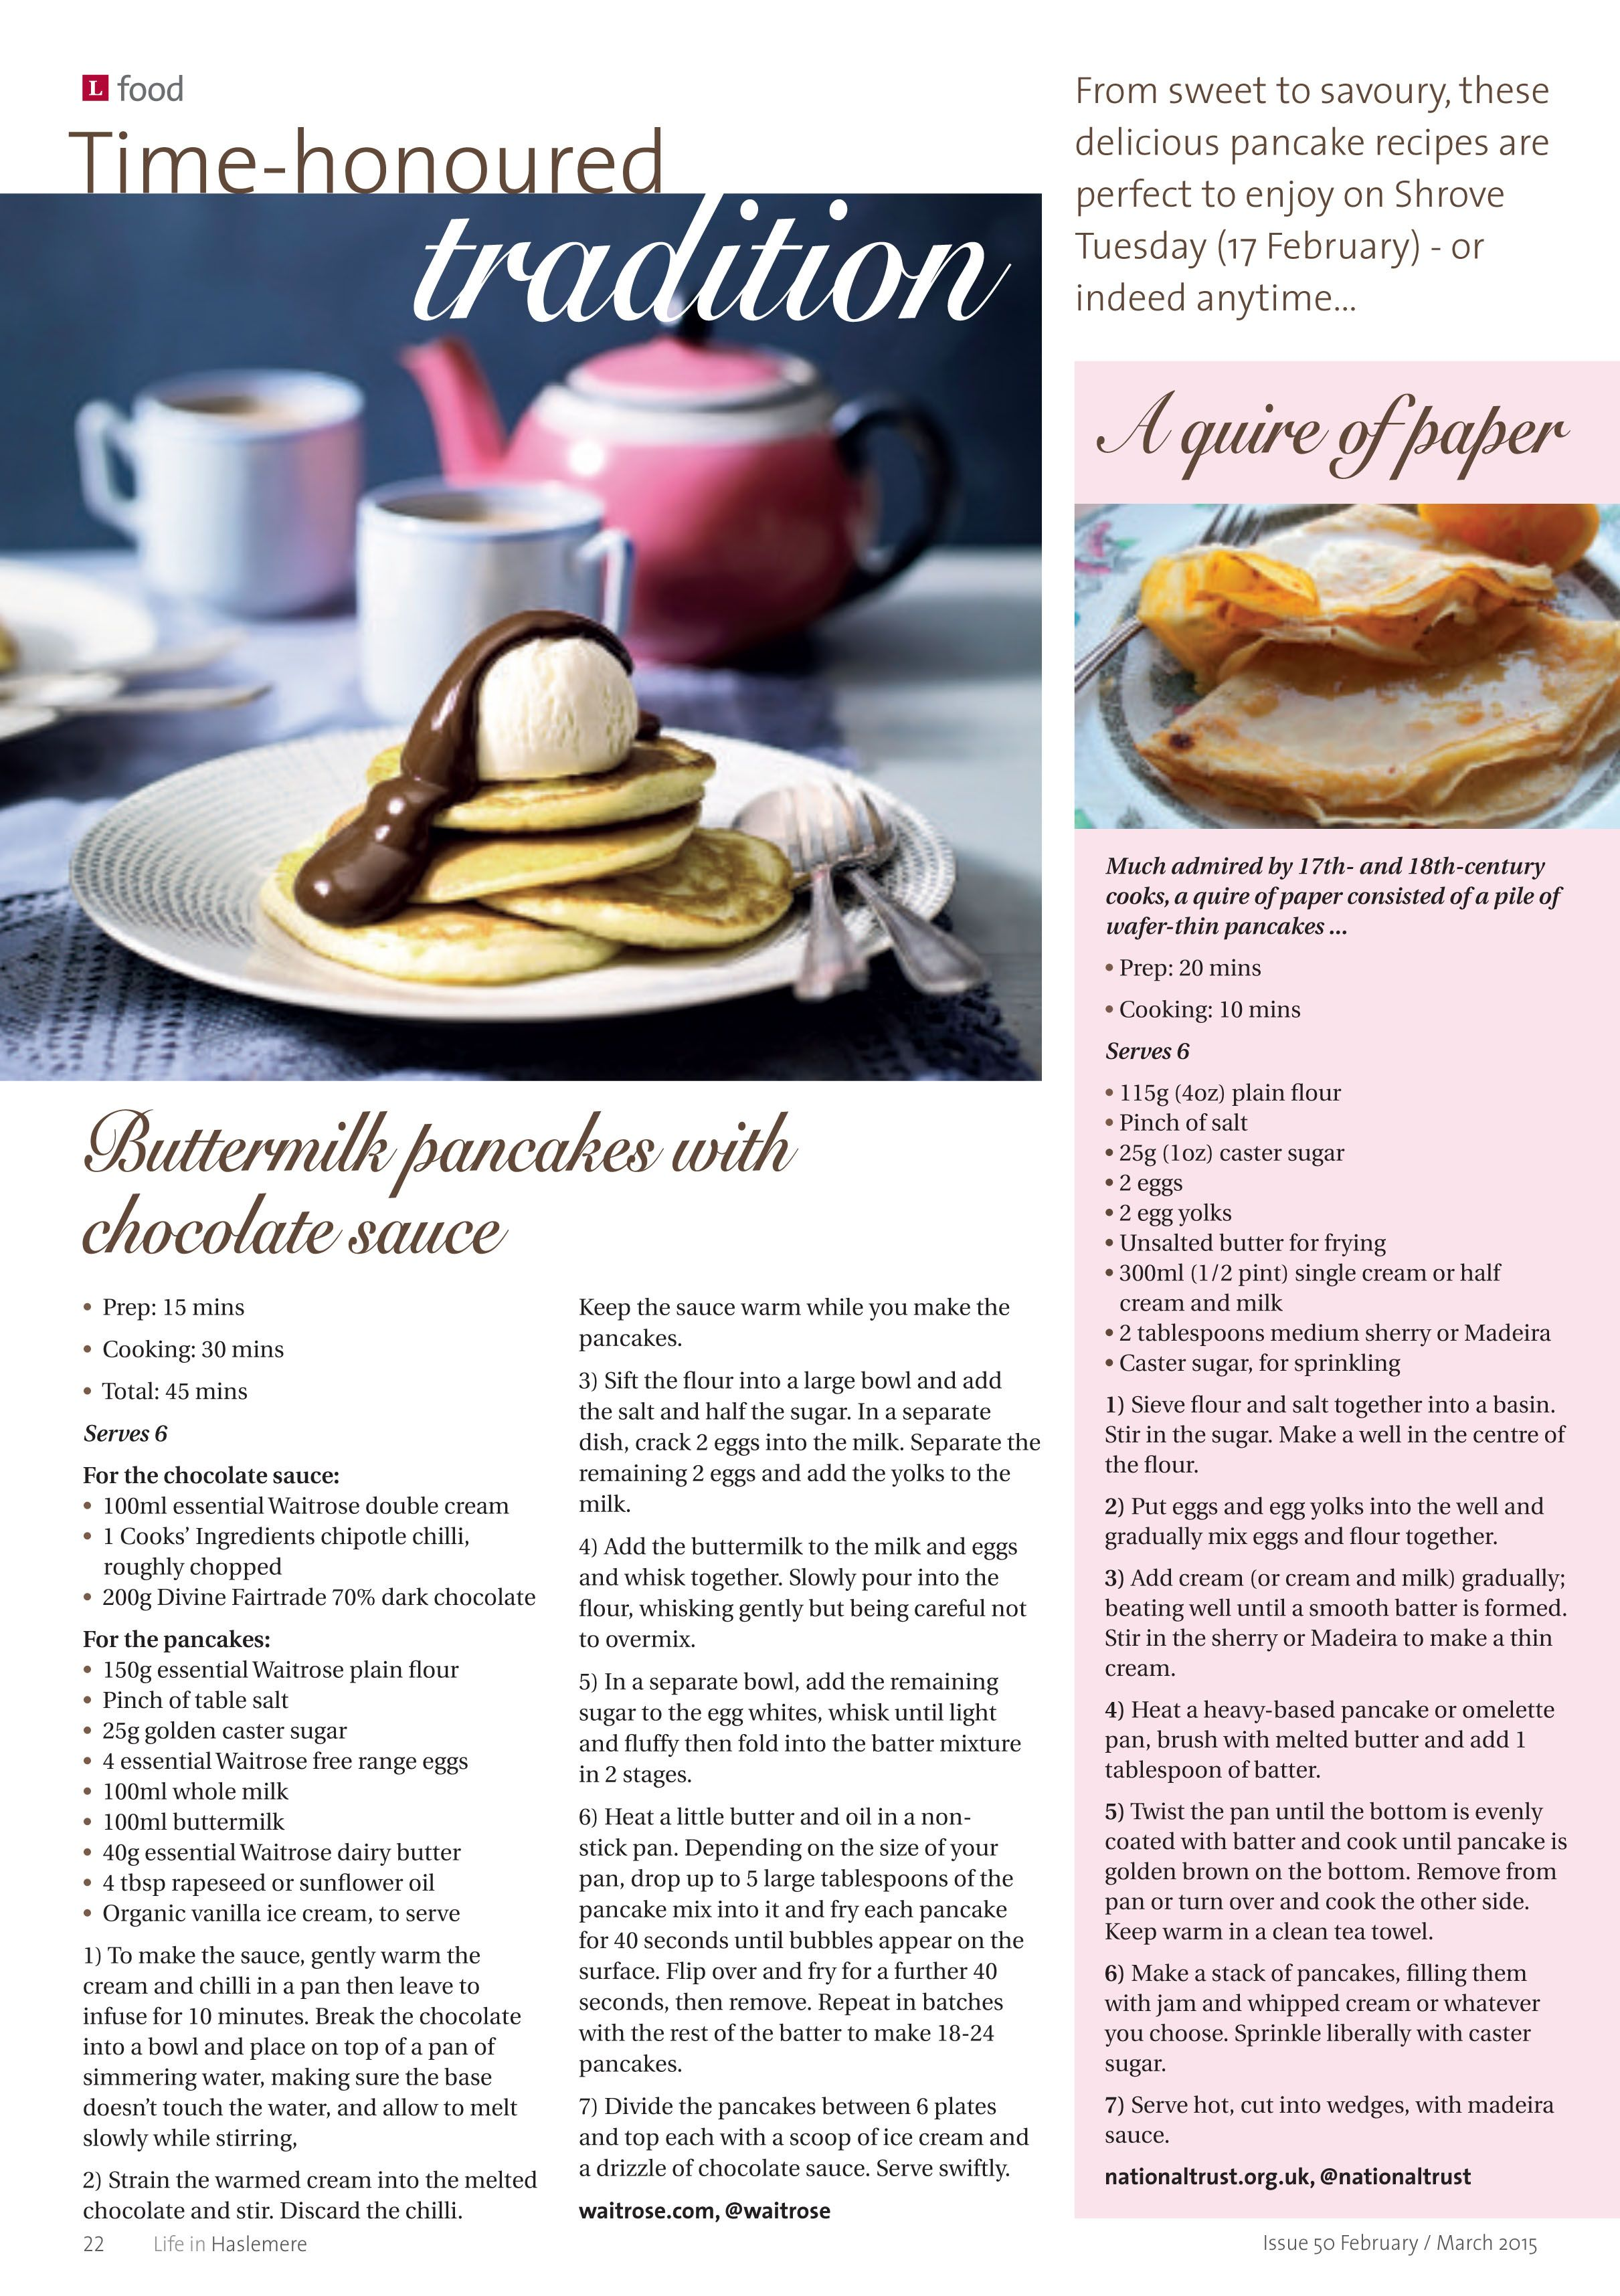 ~ Time-honoured tradition ~ From sweet to savoury, perfect pancake recipes for Shrove Tuesday (17 February) #locallife #Haslemere #Surrey #food #recipes #pancakes #sweet #savoury